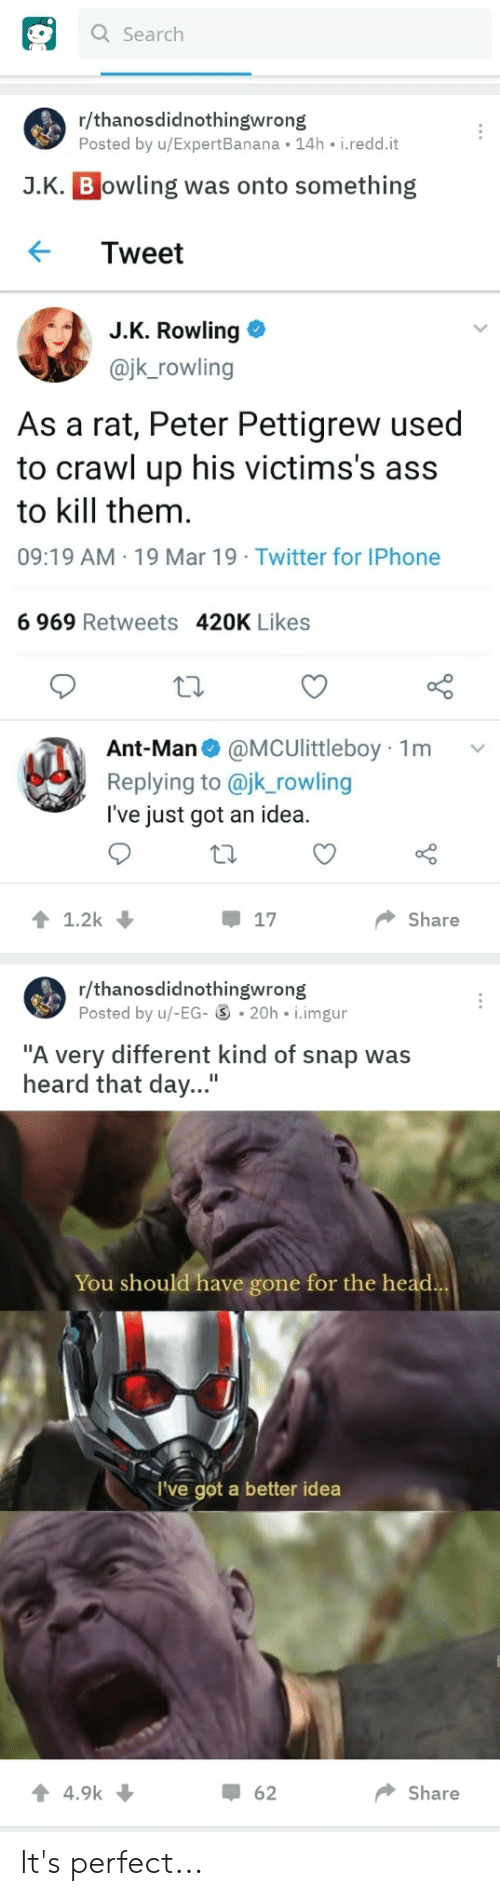 """Ass, Head, and Iphone: Q Search  r/thanosdidnothingwrong  Posted by u/ExpertBanana 14h i.redd.it  J.K. B owling was onto something  ← Tweet  J.K. Rowling  @jk_rowling  As a rat, Peter Pettigrew used  to crawl up his victims's ass  to kill them.  09:19 AM 19 Mar 19 Twitter for IPhone  6 969 Retweets  420K Likes  Ant-Man@MCUlittleboy 1m  Replying to @jk_rowling  I've just got an idea.  Share  r/thanosdidnothingwrong  Posted by u/-EG- 20h i.imgur  """"A very different kind of snap was  heard that day...""""  You should have gone for the head  I've got a better idea  62  Share It's perfect..."""